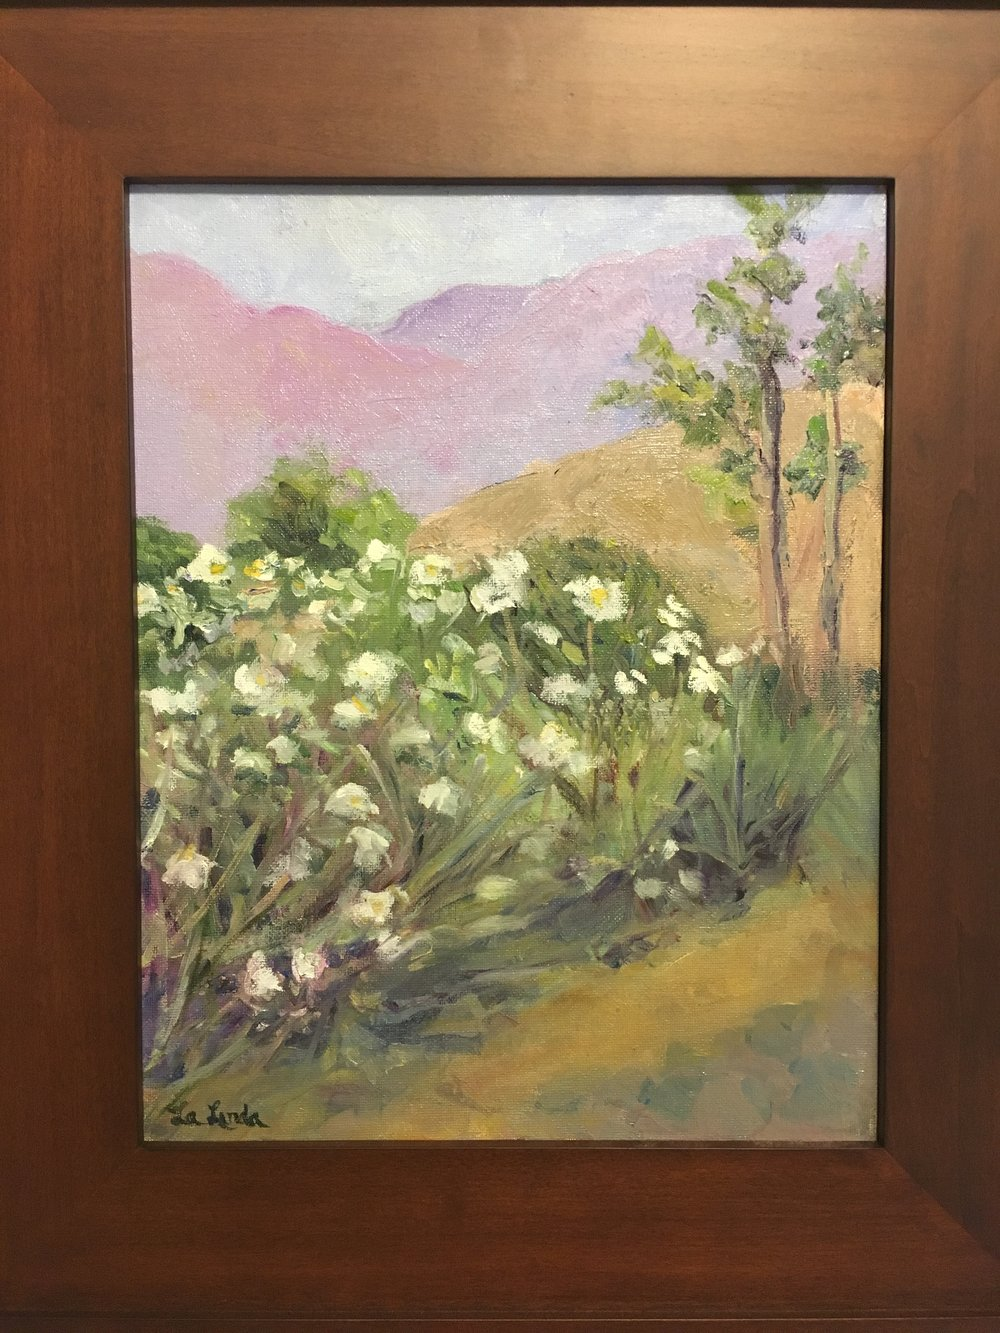 "Wildflowers, oil 11x14"" $225 (framed)"